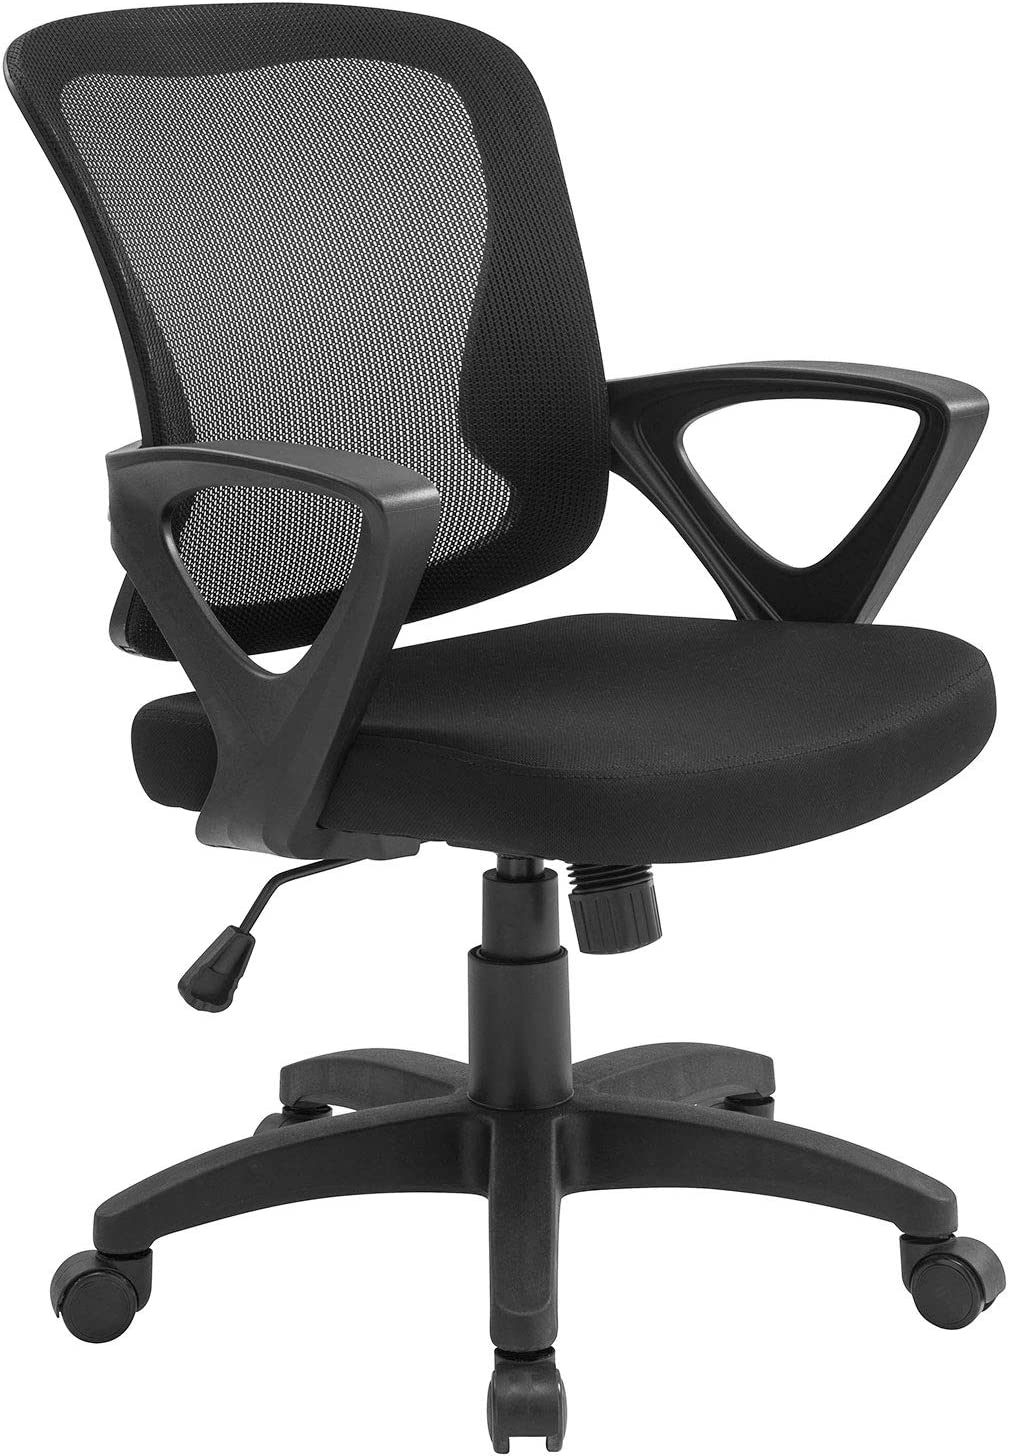 Office Chair Ergonomic Desk Chair Adjustable Modern Mid Back Swivel Chair for Small Place, White(Black)